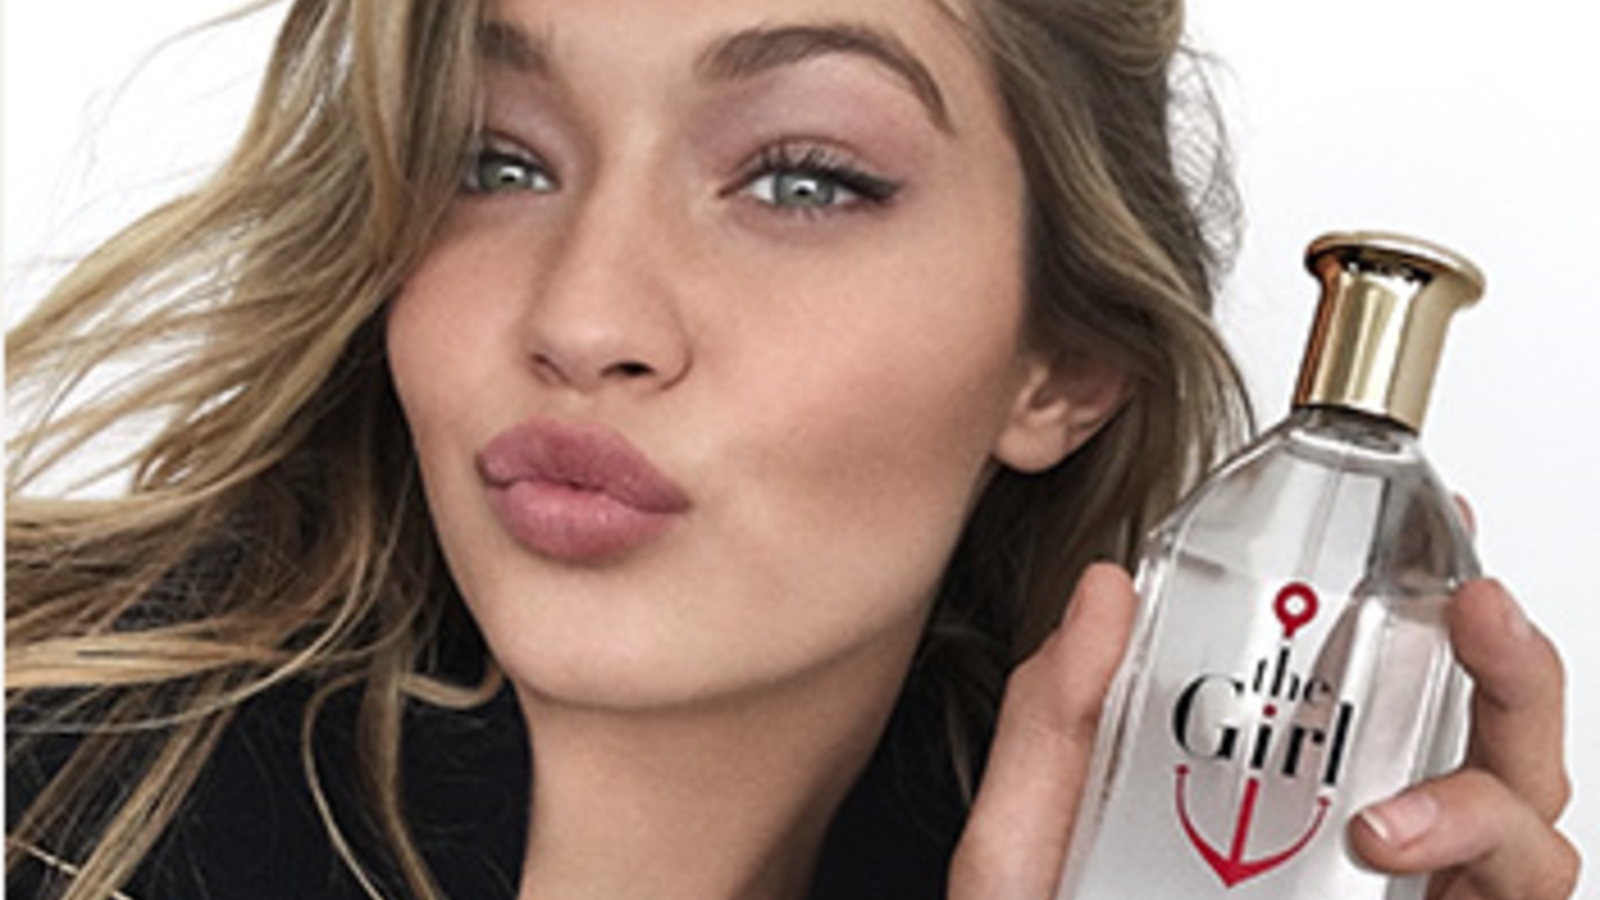 59c5a5accaf4ec Gigi Hadid perfects her pout as The Girl for Tommy Hilfiger! | Al Bawaba